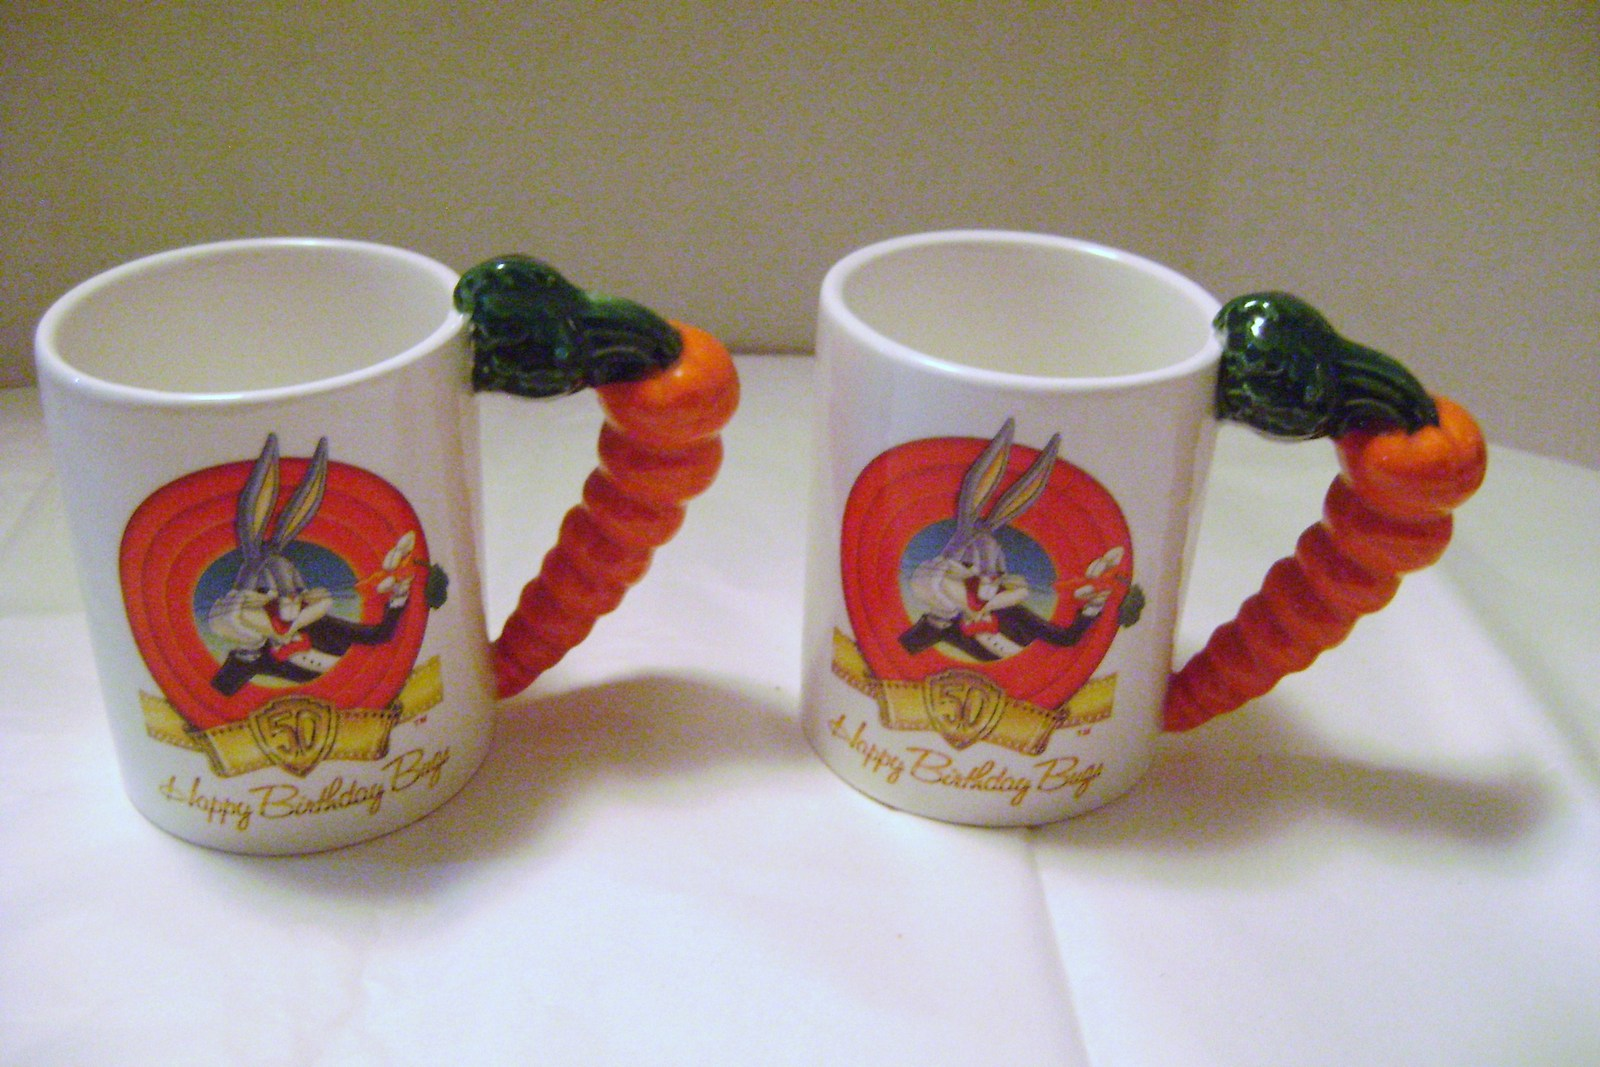 Primary image for Bugs Bunny 50th Anniversary Mugs with Carrot Handles